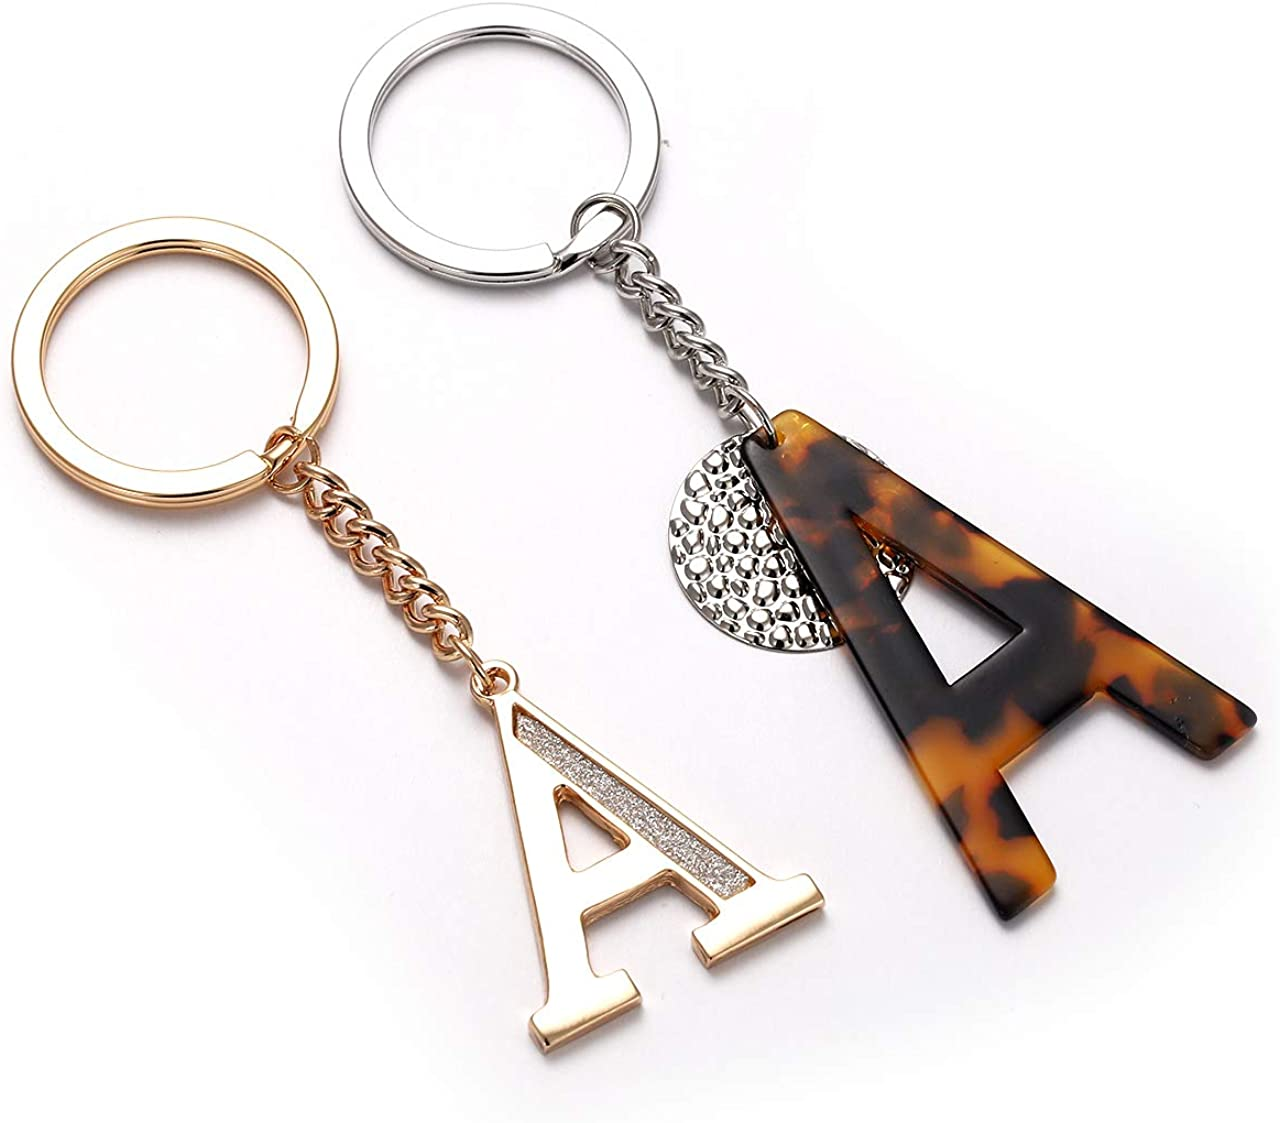 D Initial Keychain A-Z available in my shop Letter Key Chain